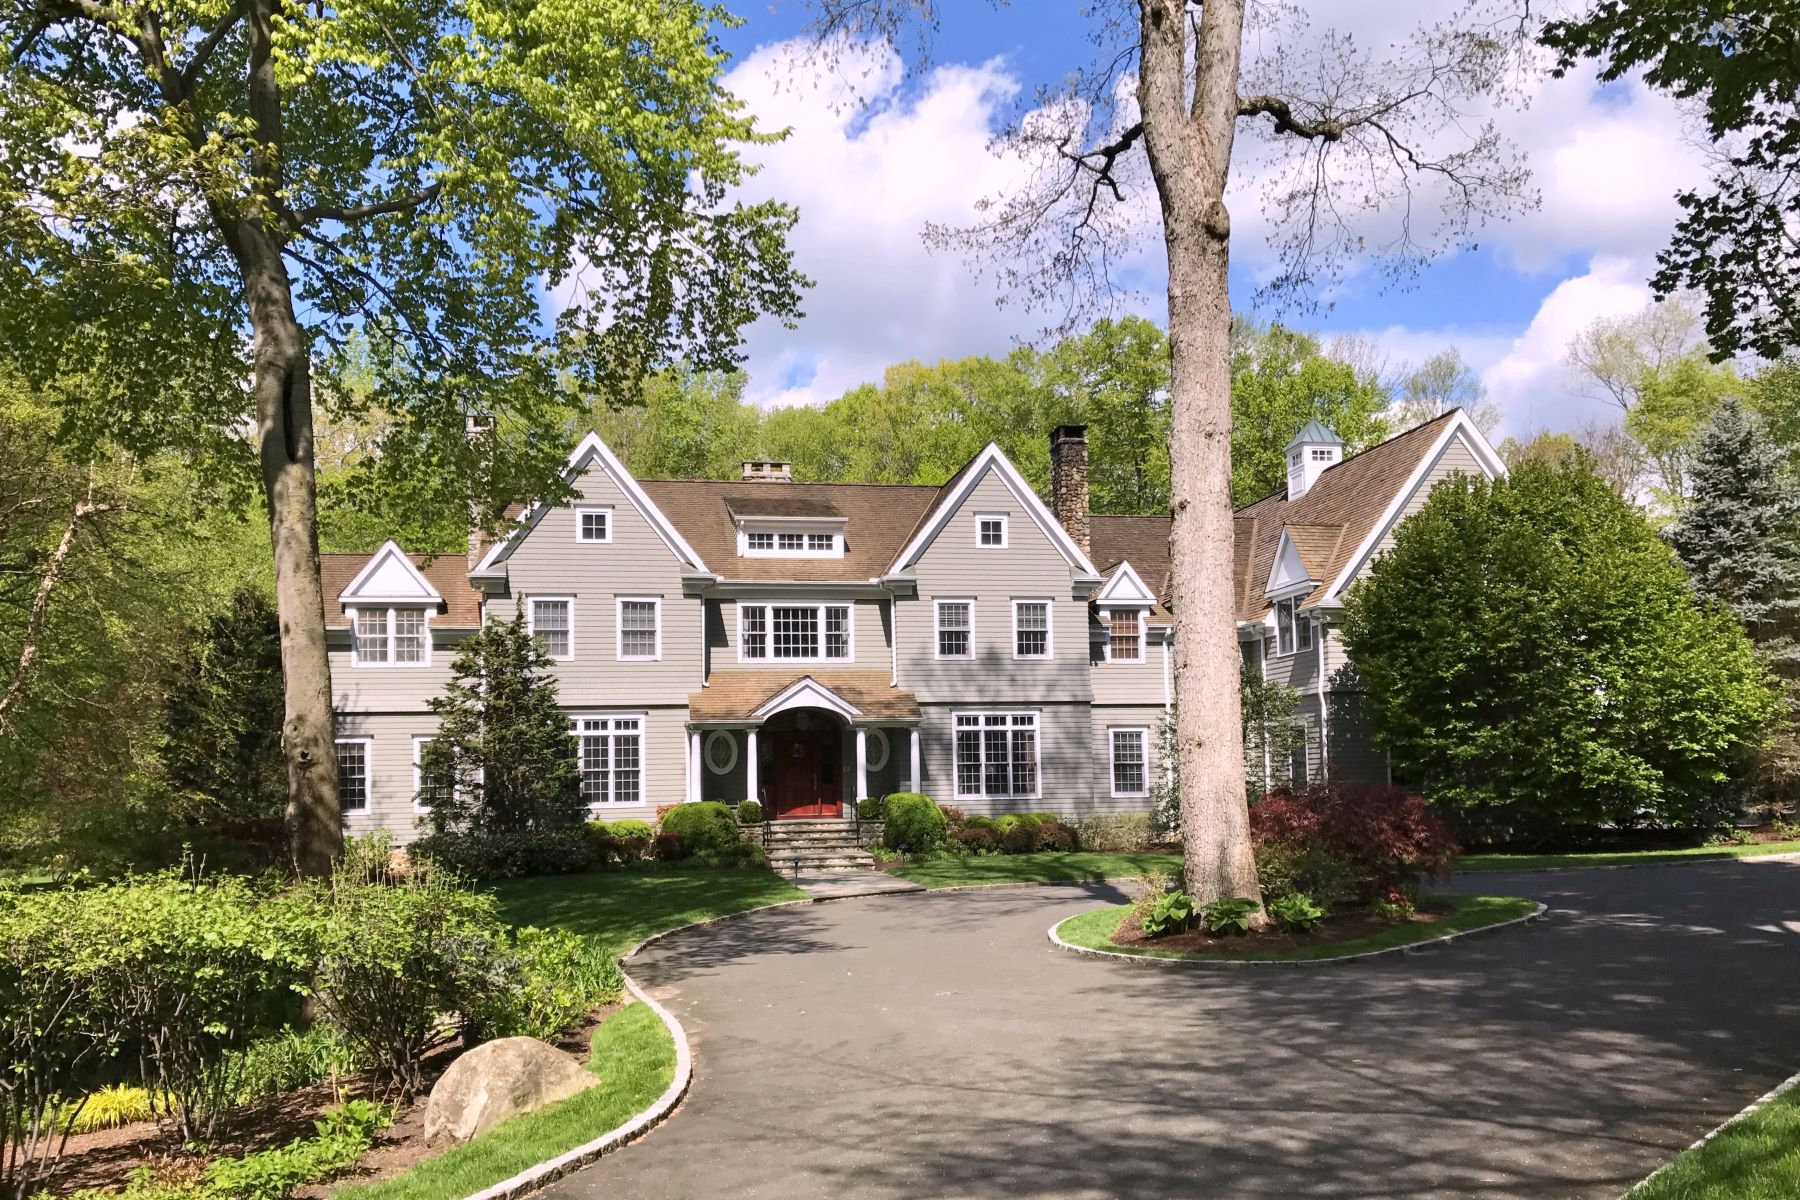 Vivienda unifamiliar por un Venta en 53 Blueberry Lane 53 Blueberry Lane Darien, Connecticut 06820 Estados Unidos